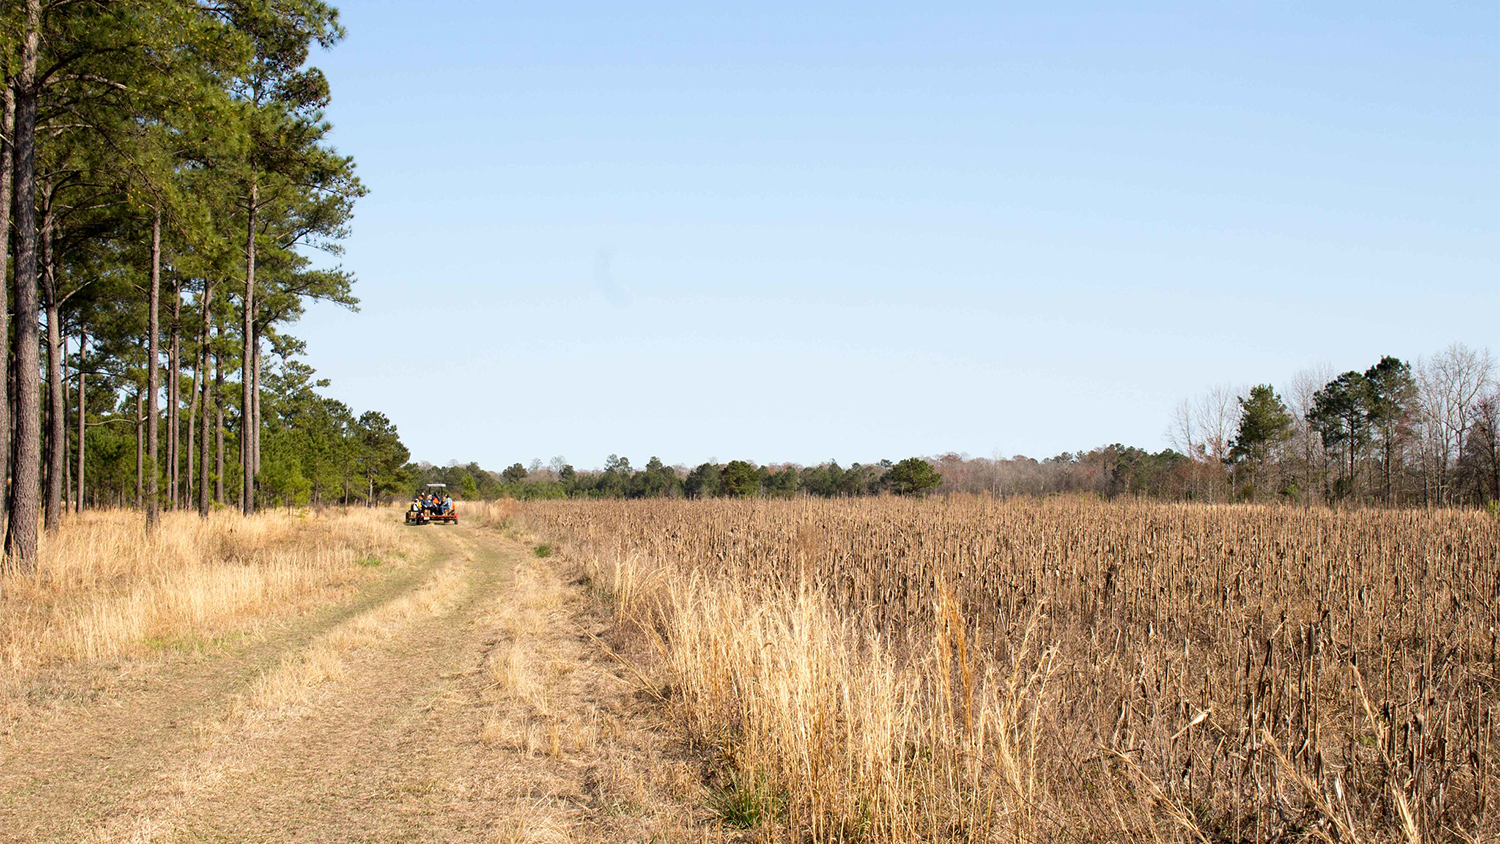 A tractor drives between a corn field and wooded area